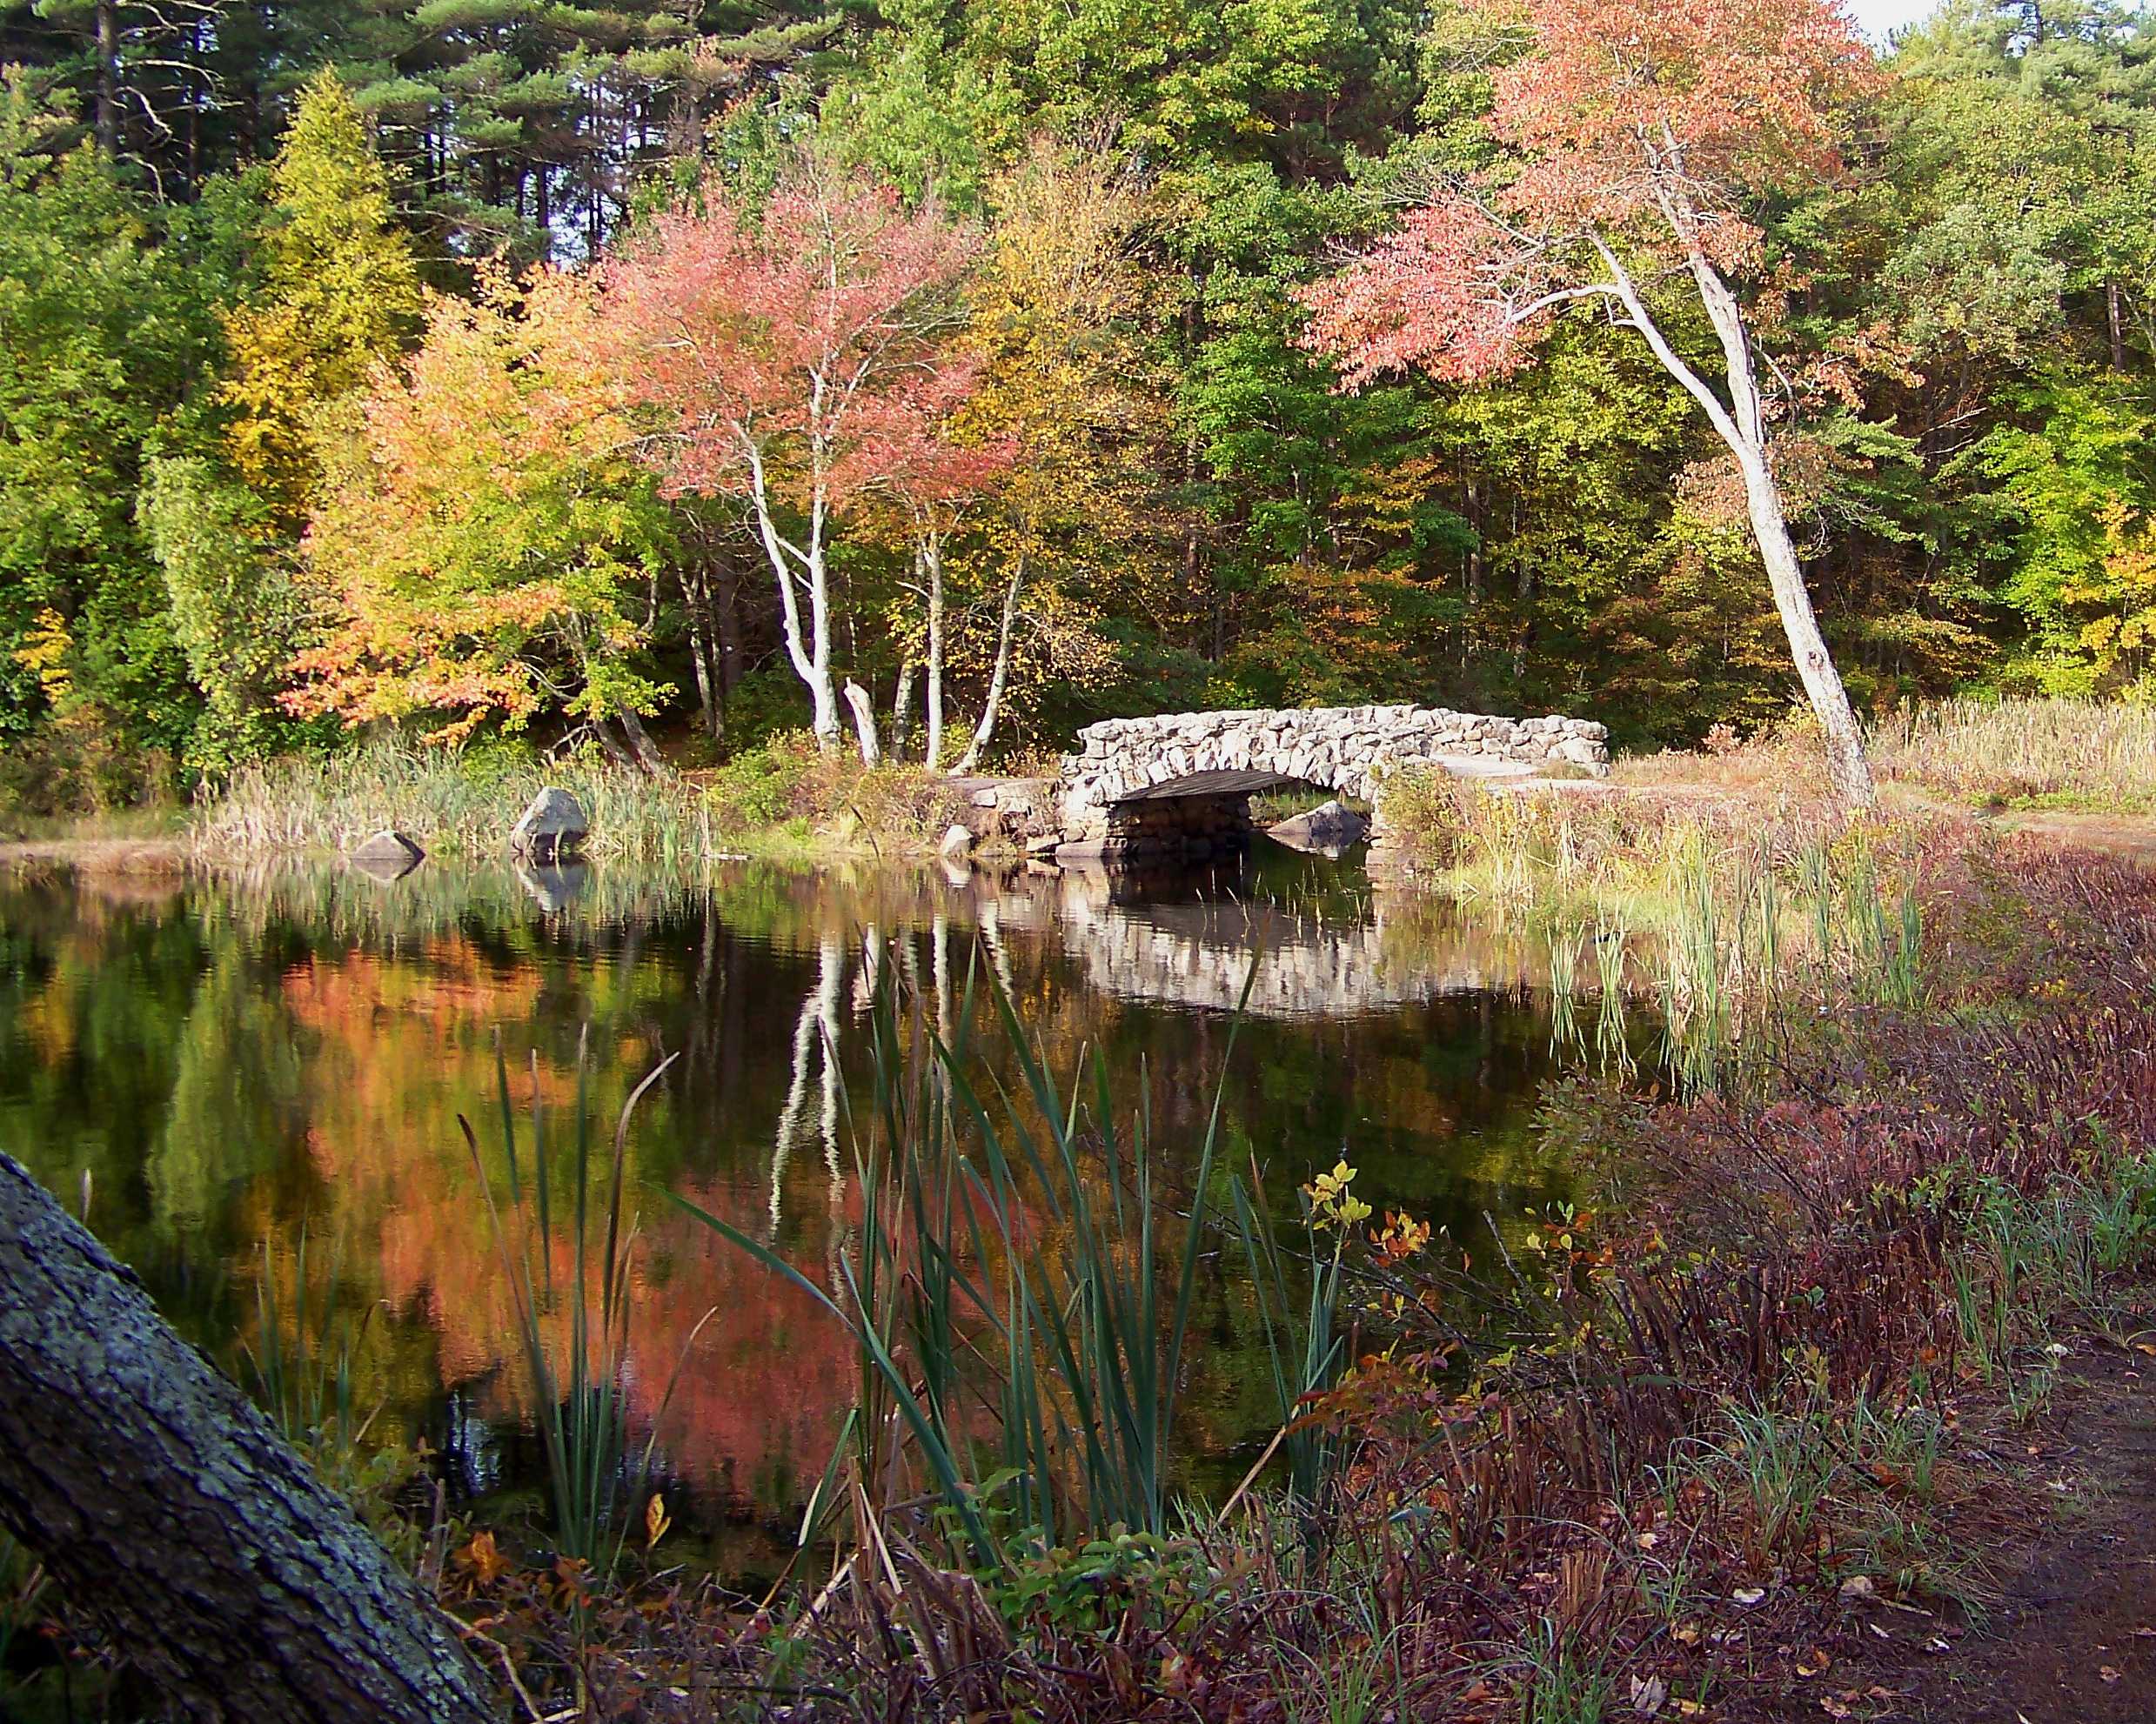 judy-belben-Rustic Bridge-Hopedale Parklands - OK